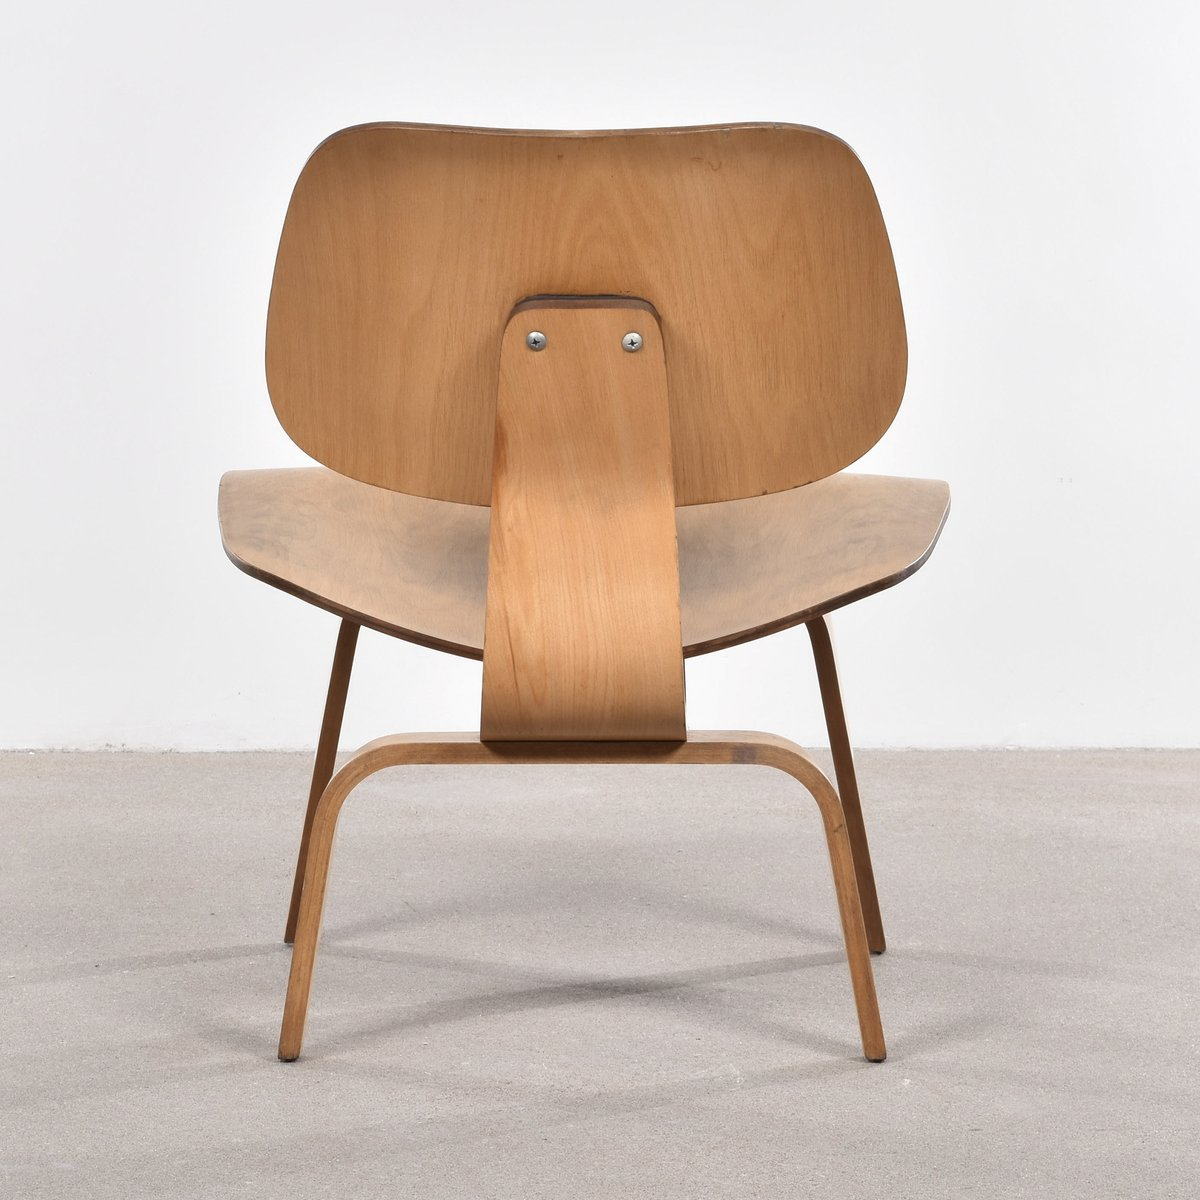 American LCW Oak Lounge Chair By Charles & Ray Eames For